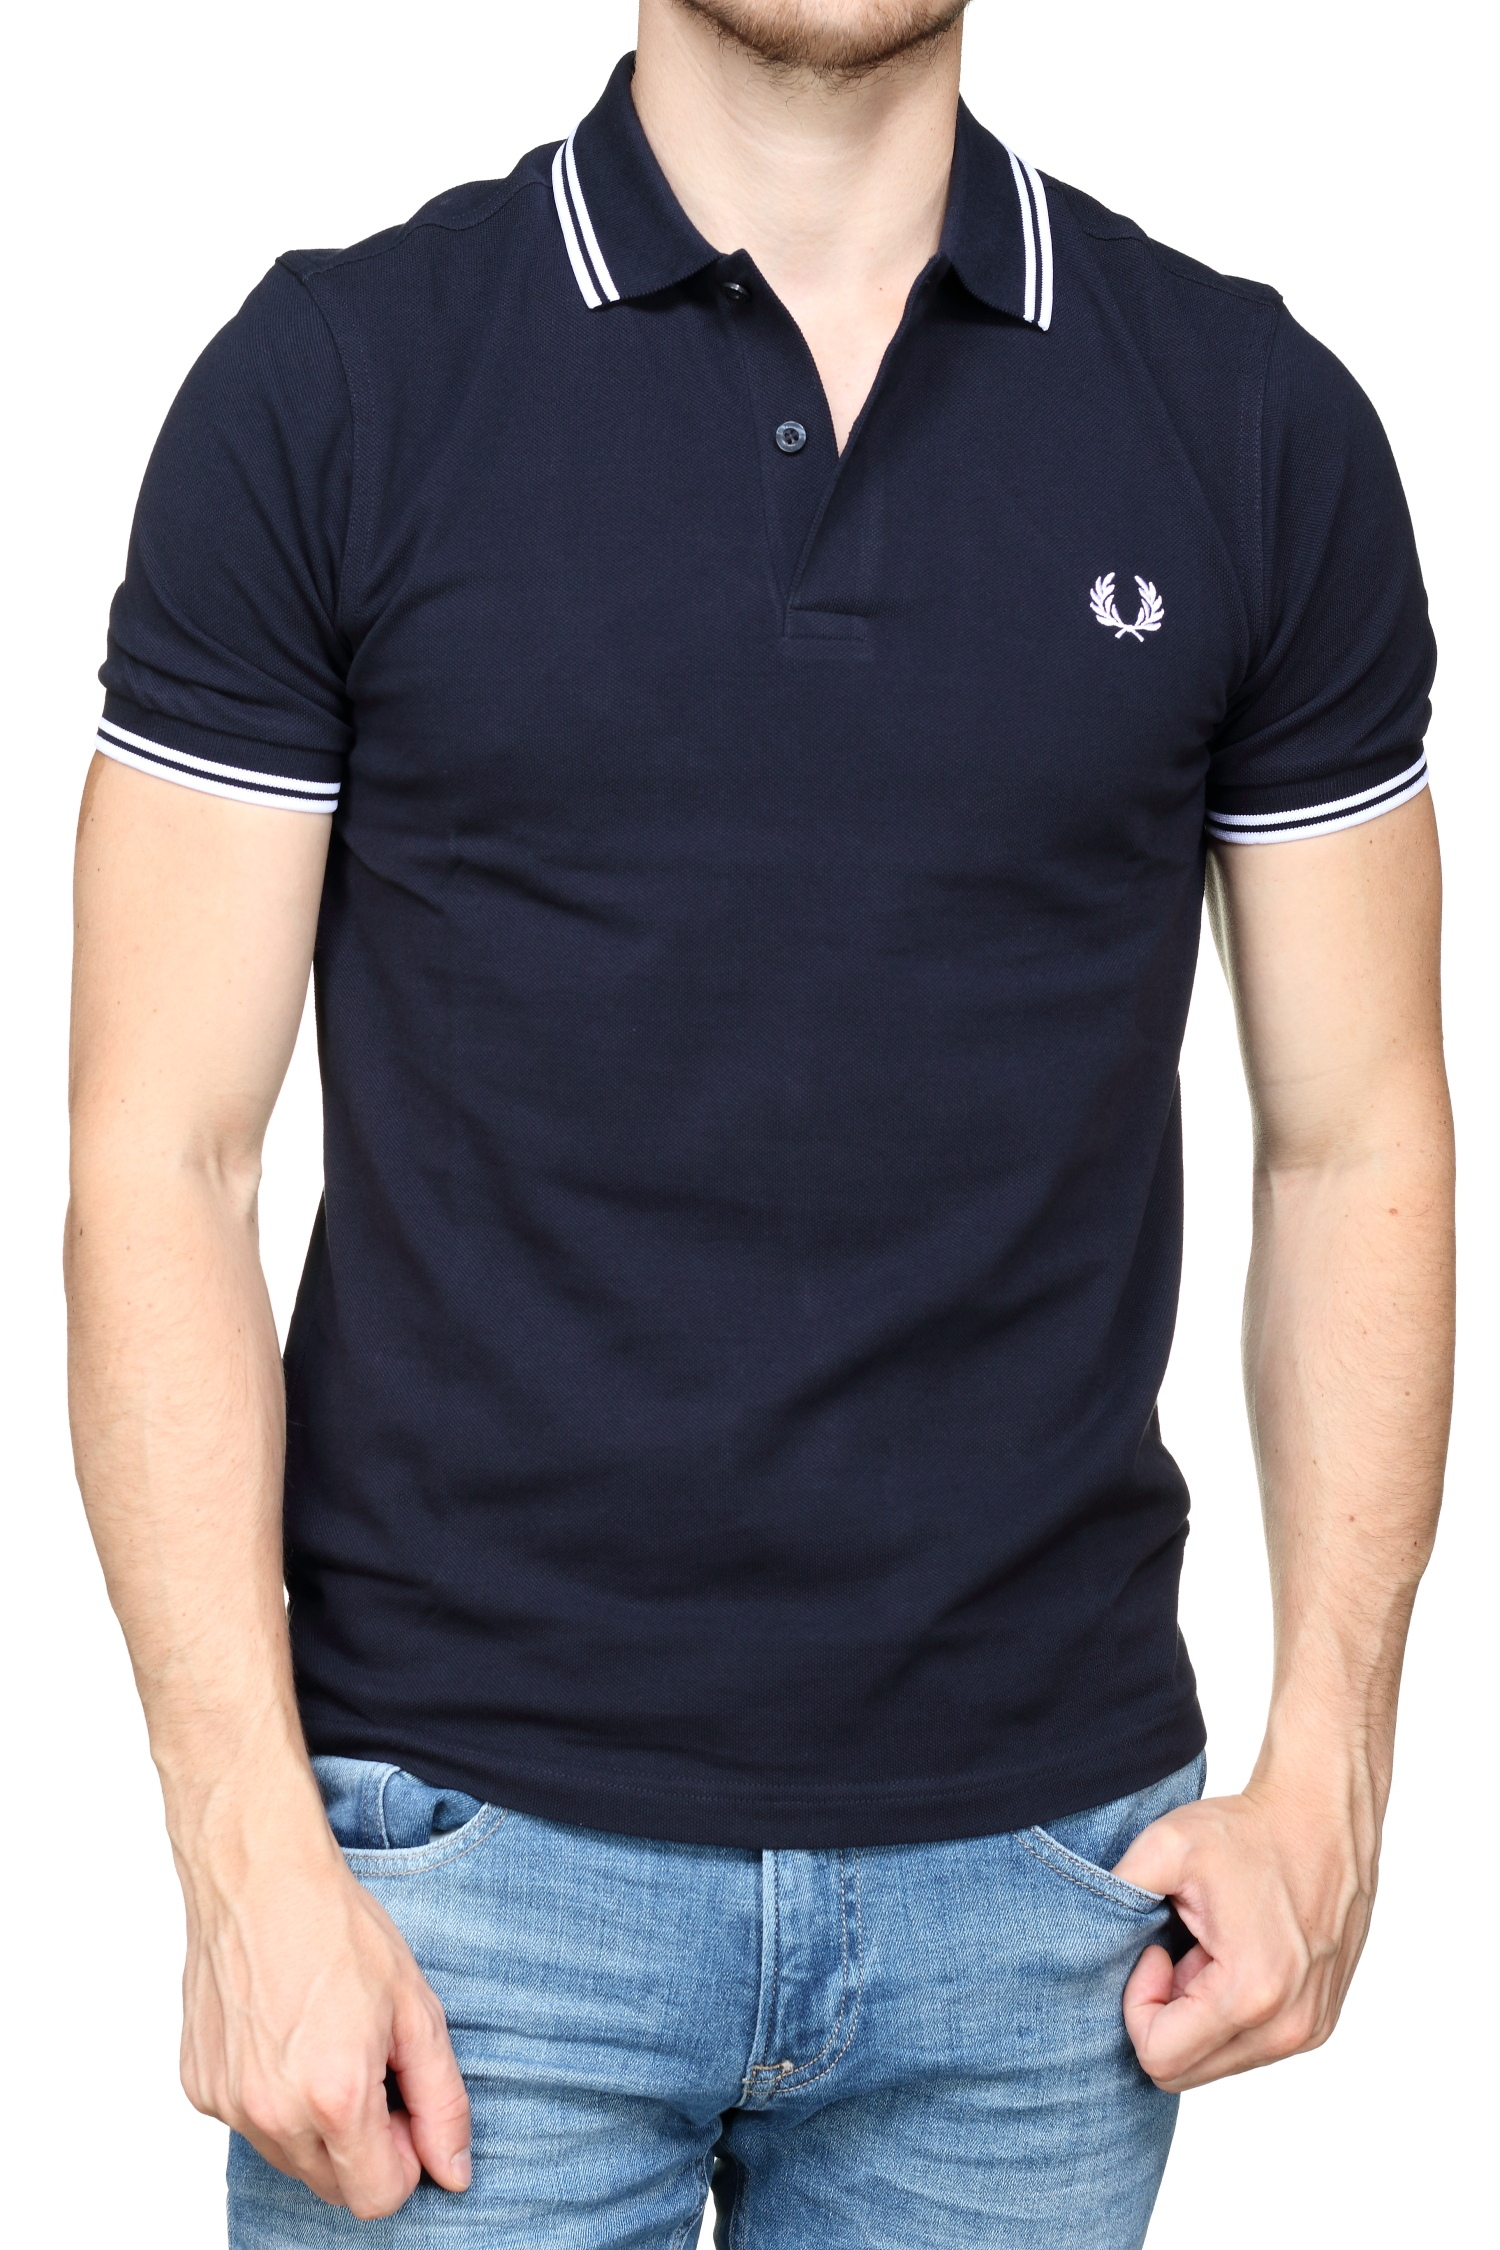 http://www.leadermode.com/176362/fred-perry-fpmm3600-238-navy-white.jpg